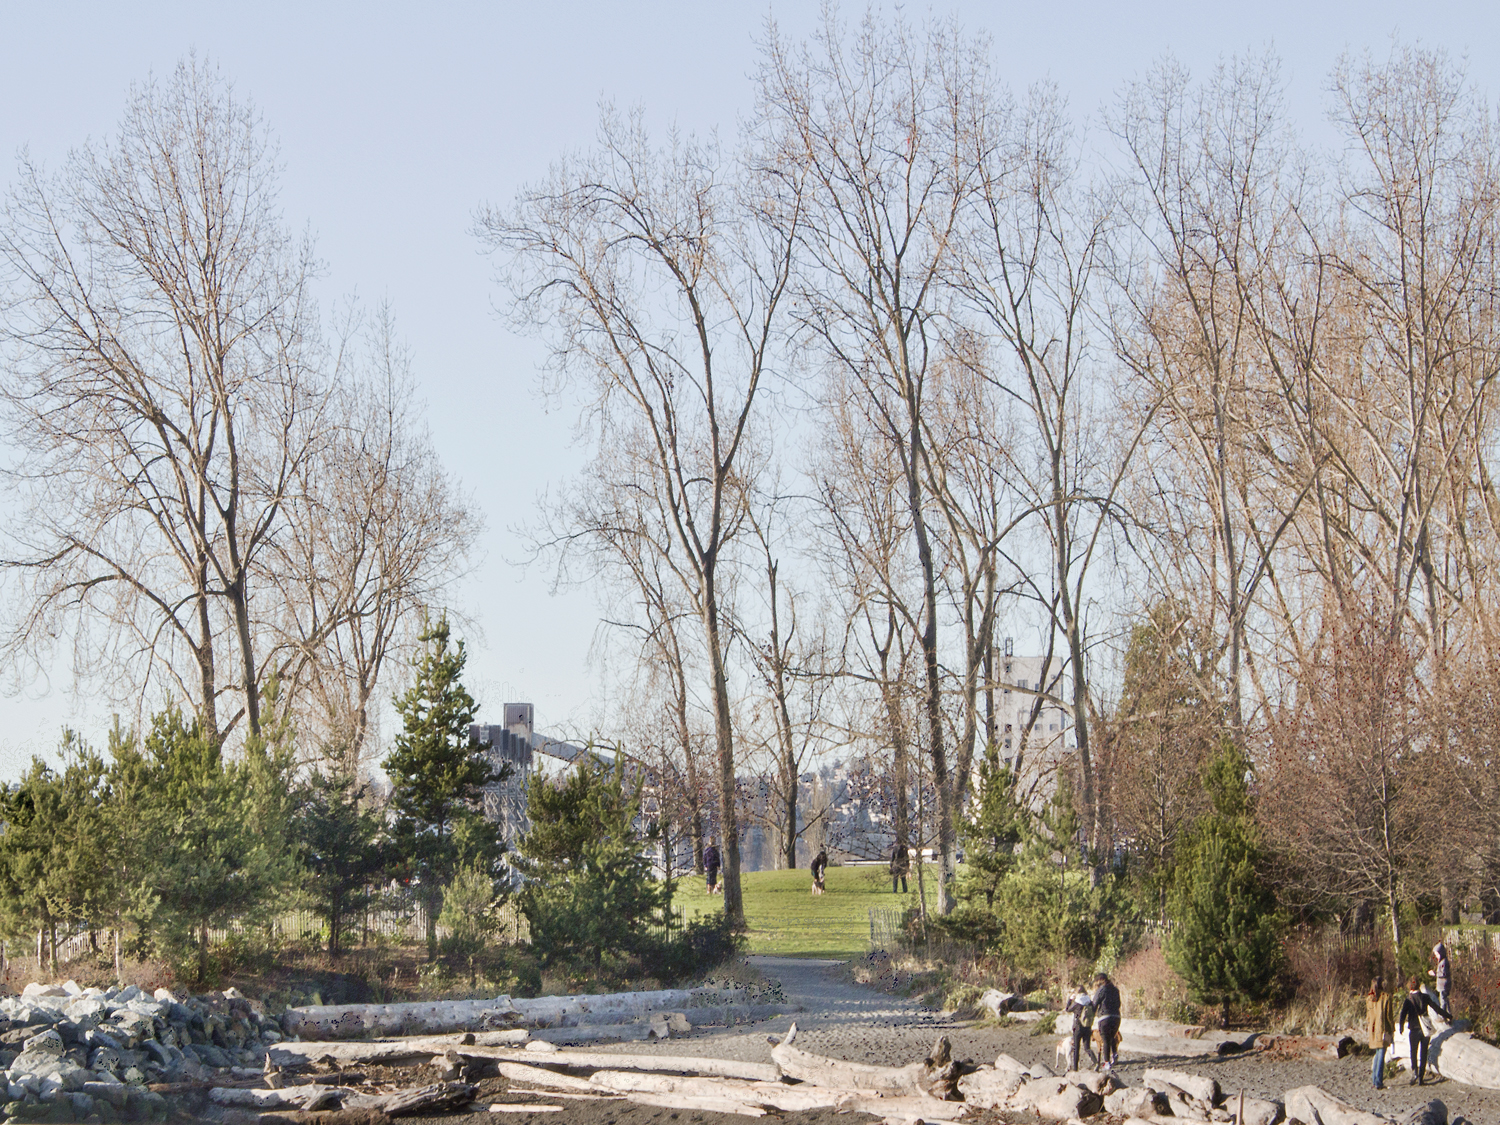 Beach and Park by Puget Sound, Seattle